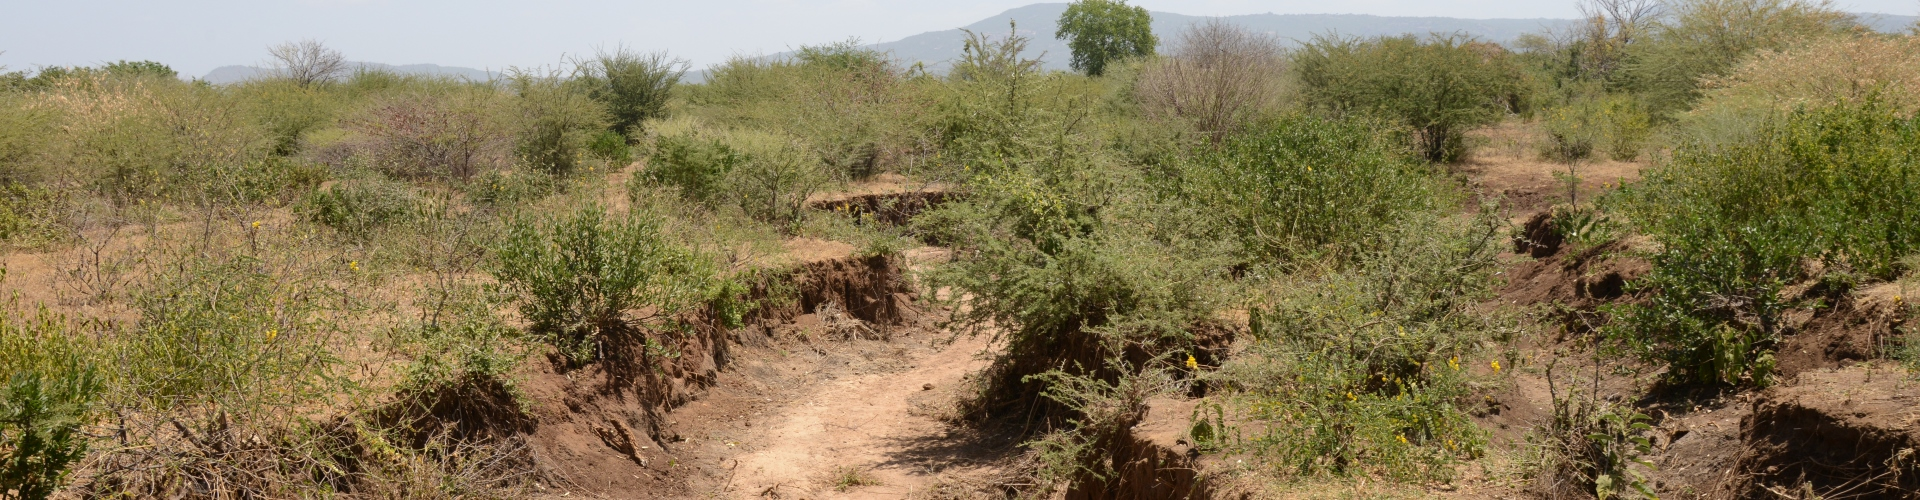 Degraded land in Mwingi, Kenya